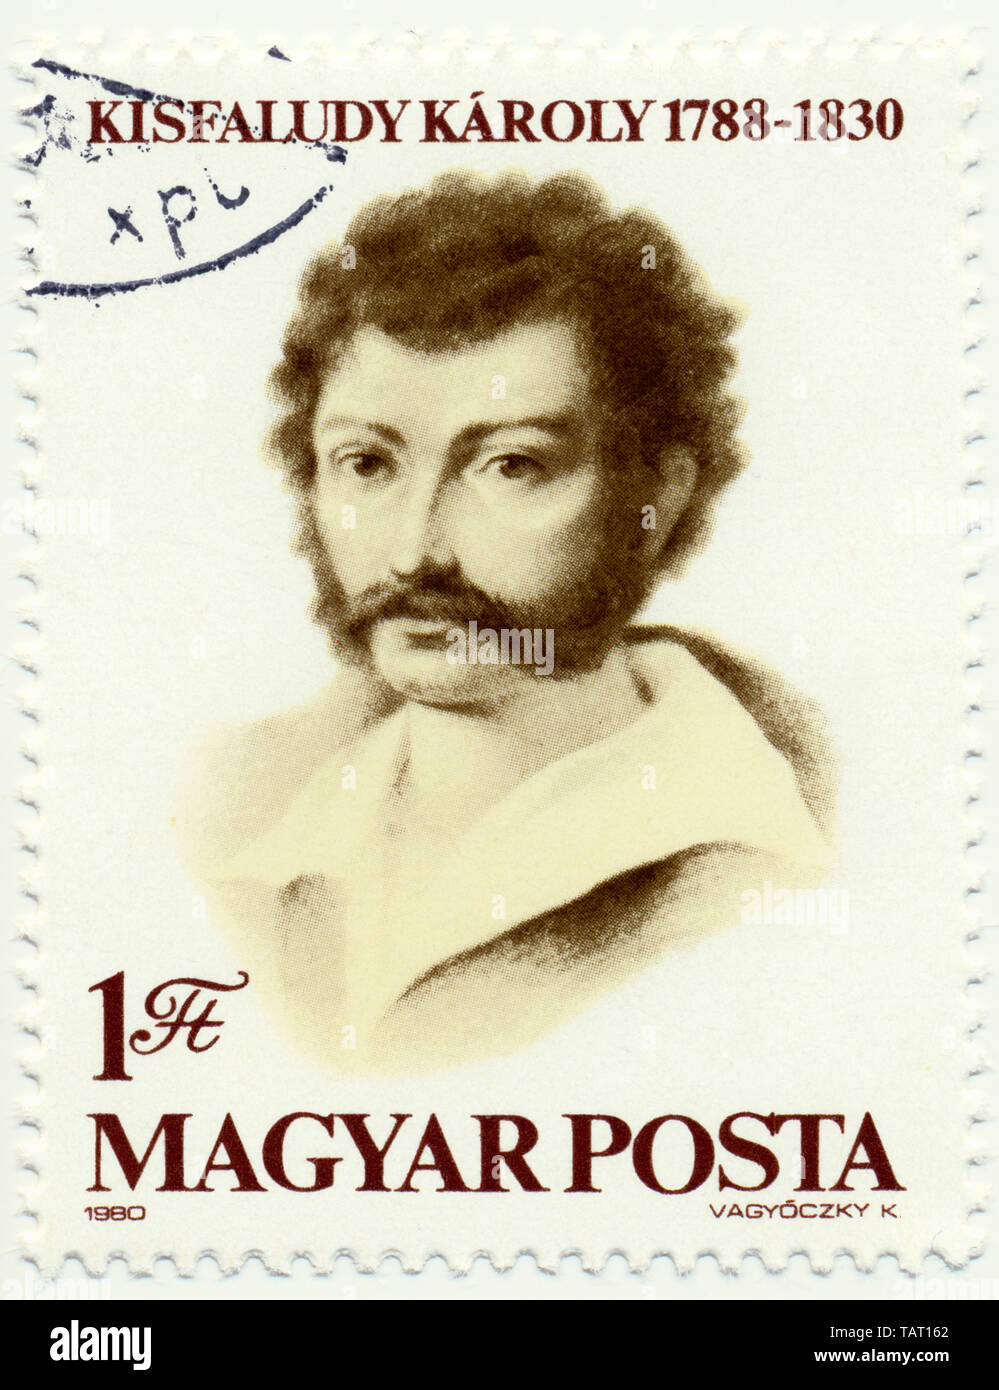 Historic postage stamps from Hungary, Historische Briefmarke, Karoly Kisfaludy, 1980, Ungarn, Europa Stock Photo